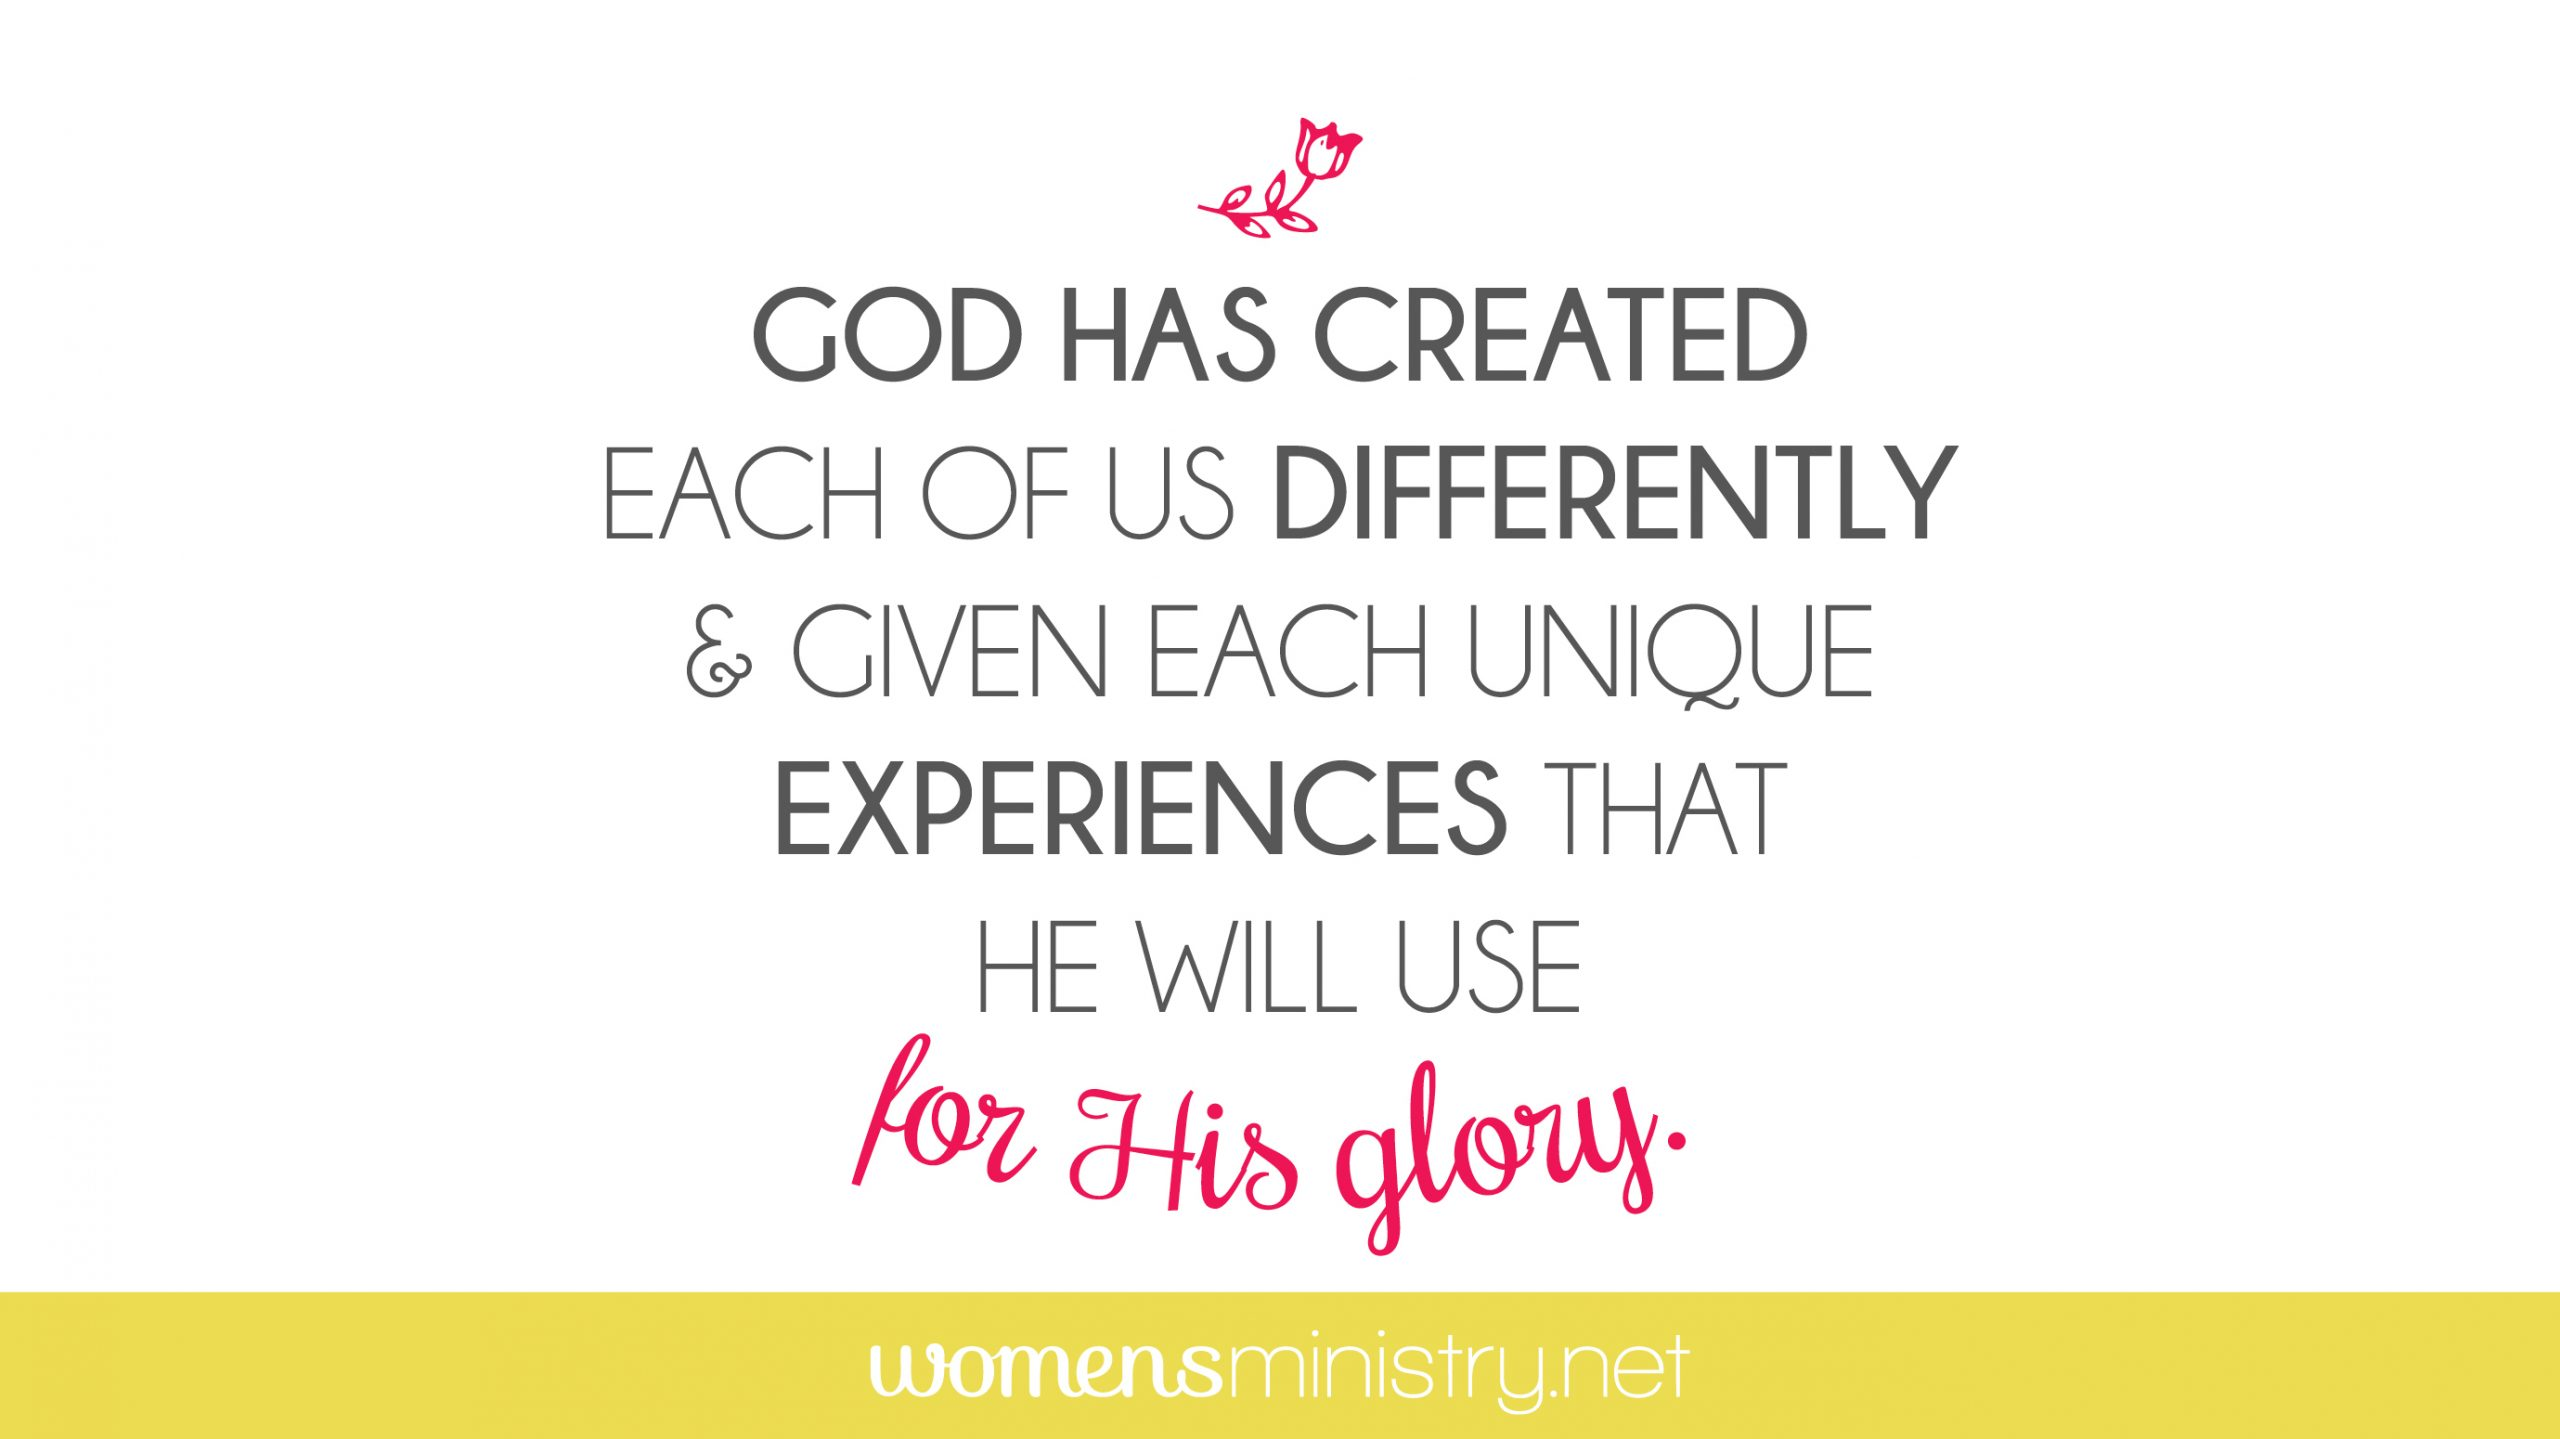 God has created each one of us differently